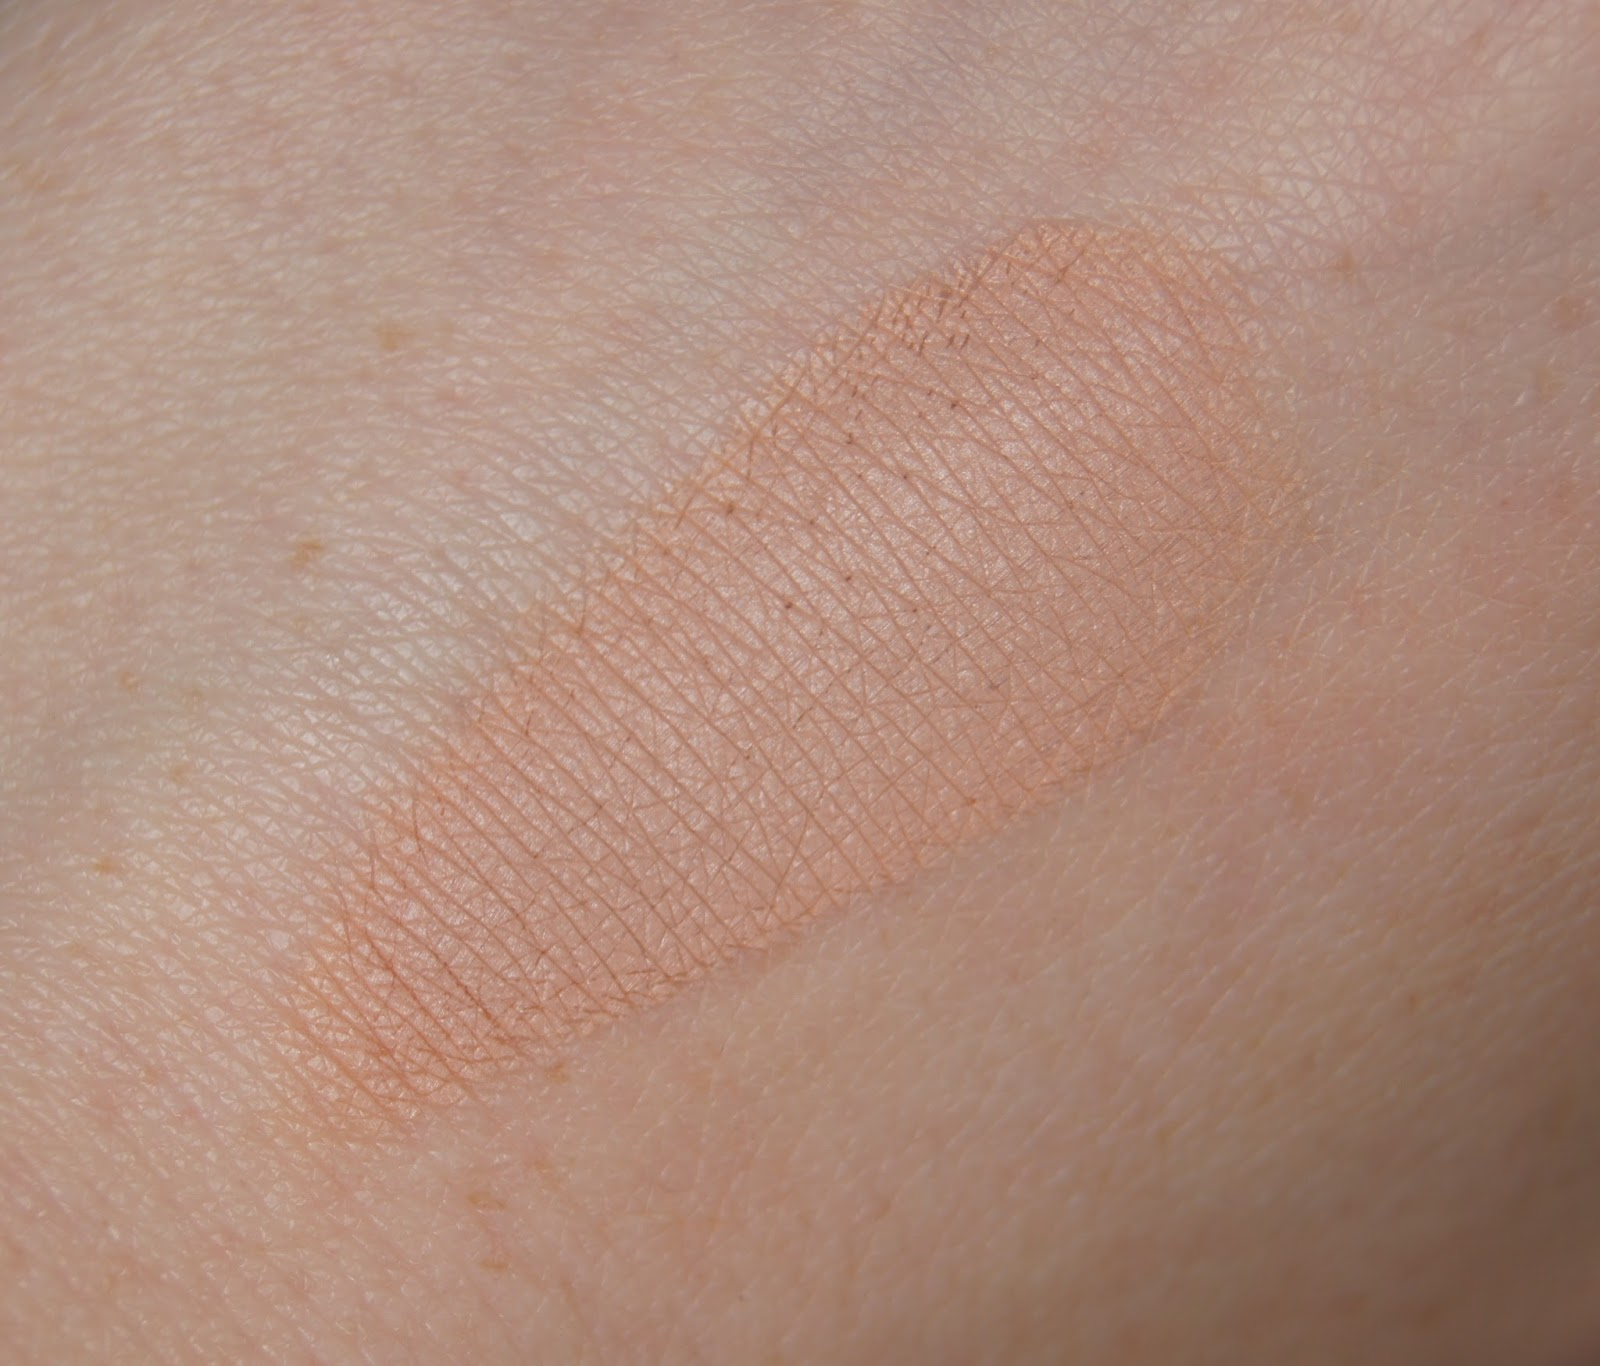 benefit boi-ing industrial strength concealer shade 02 swatch